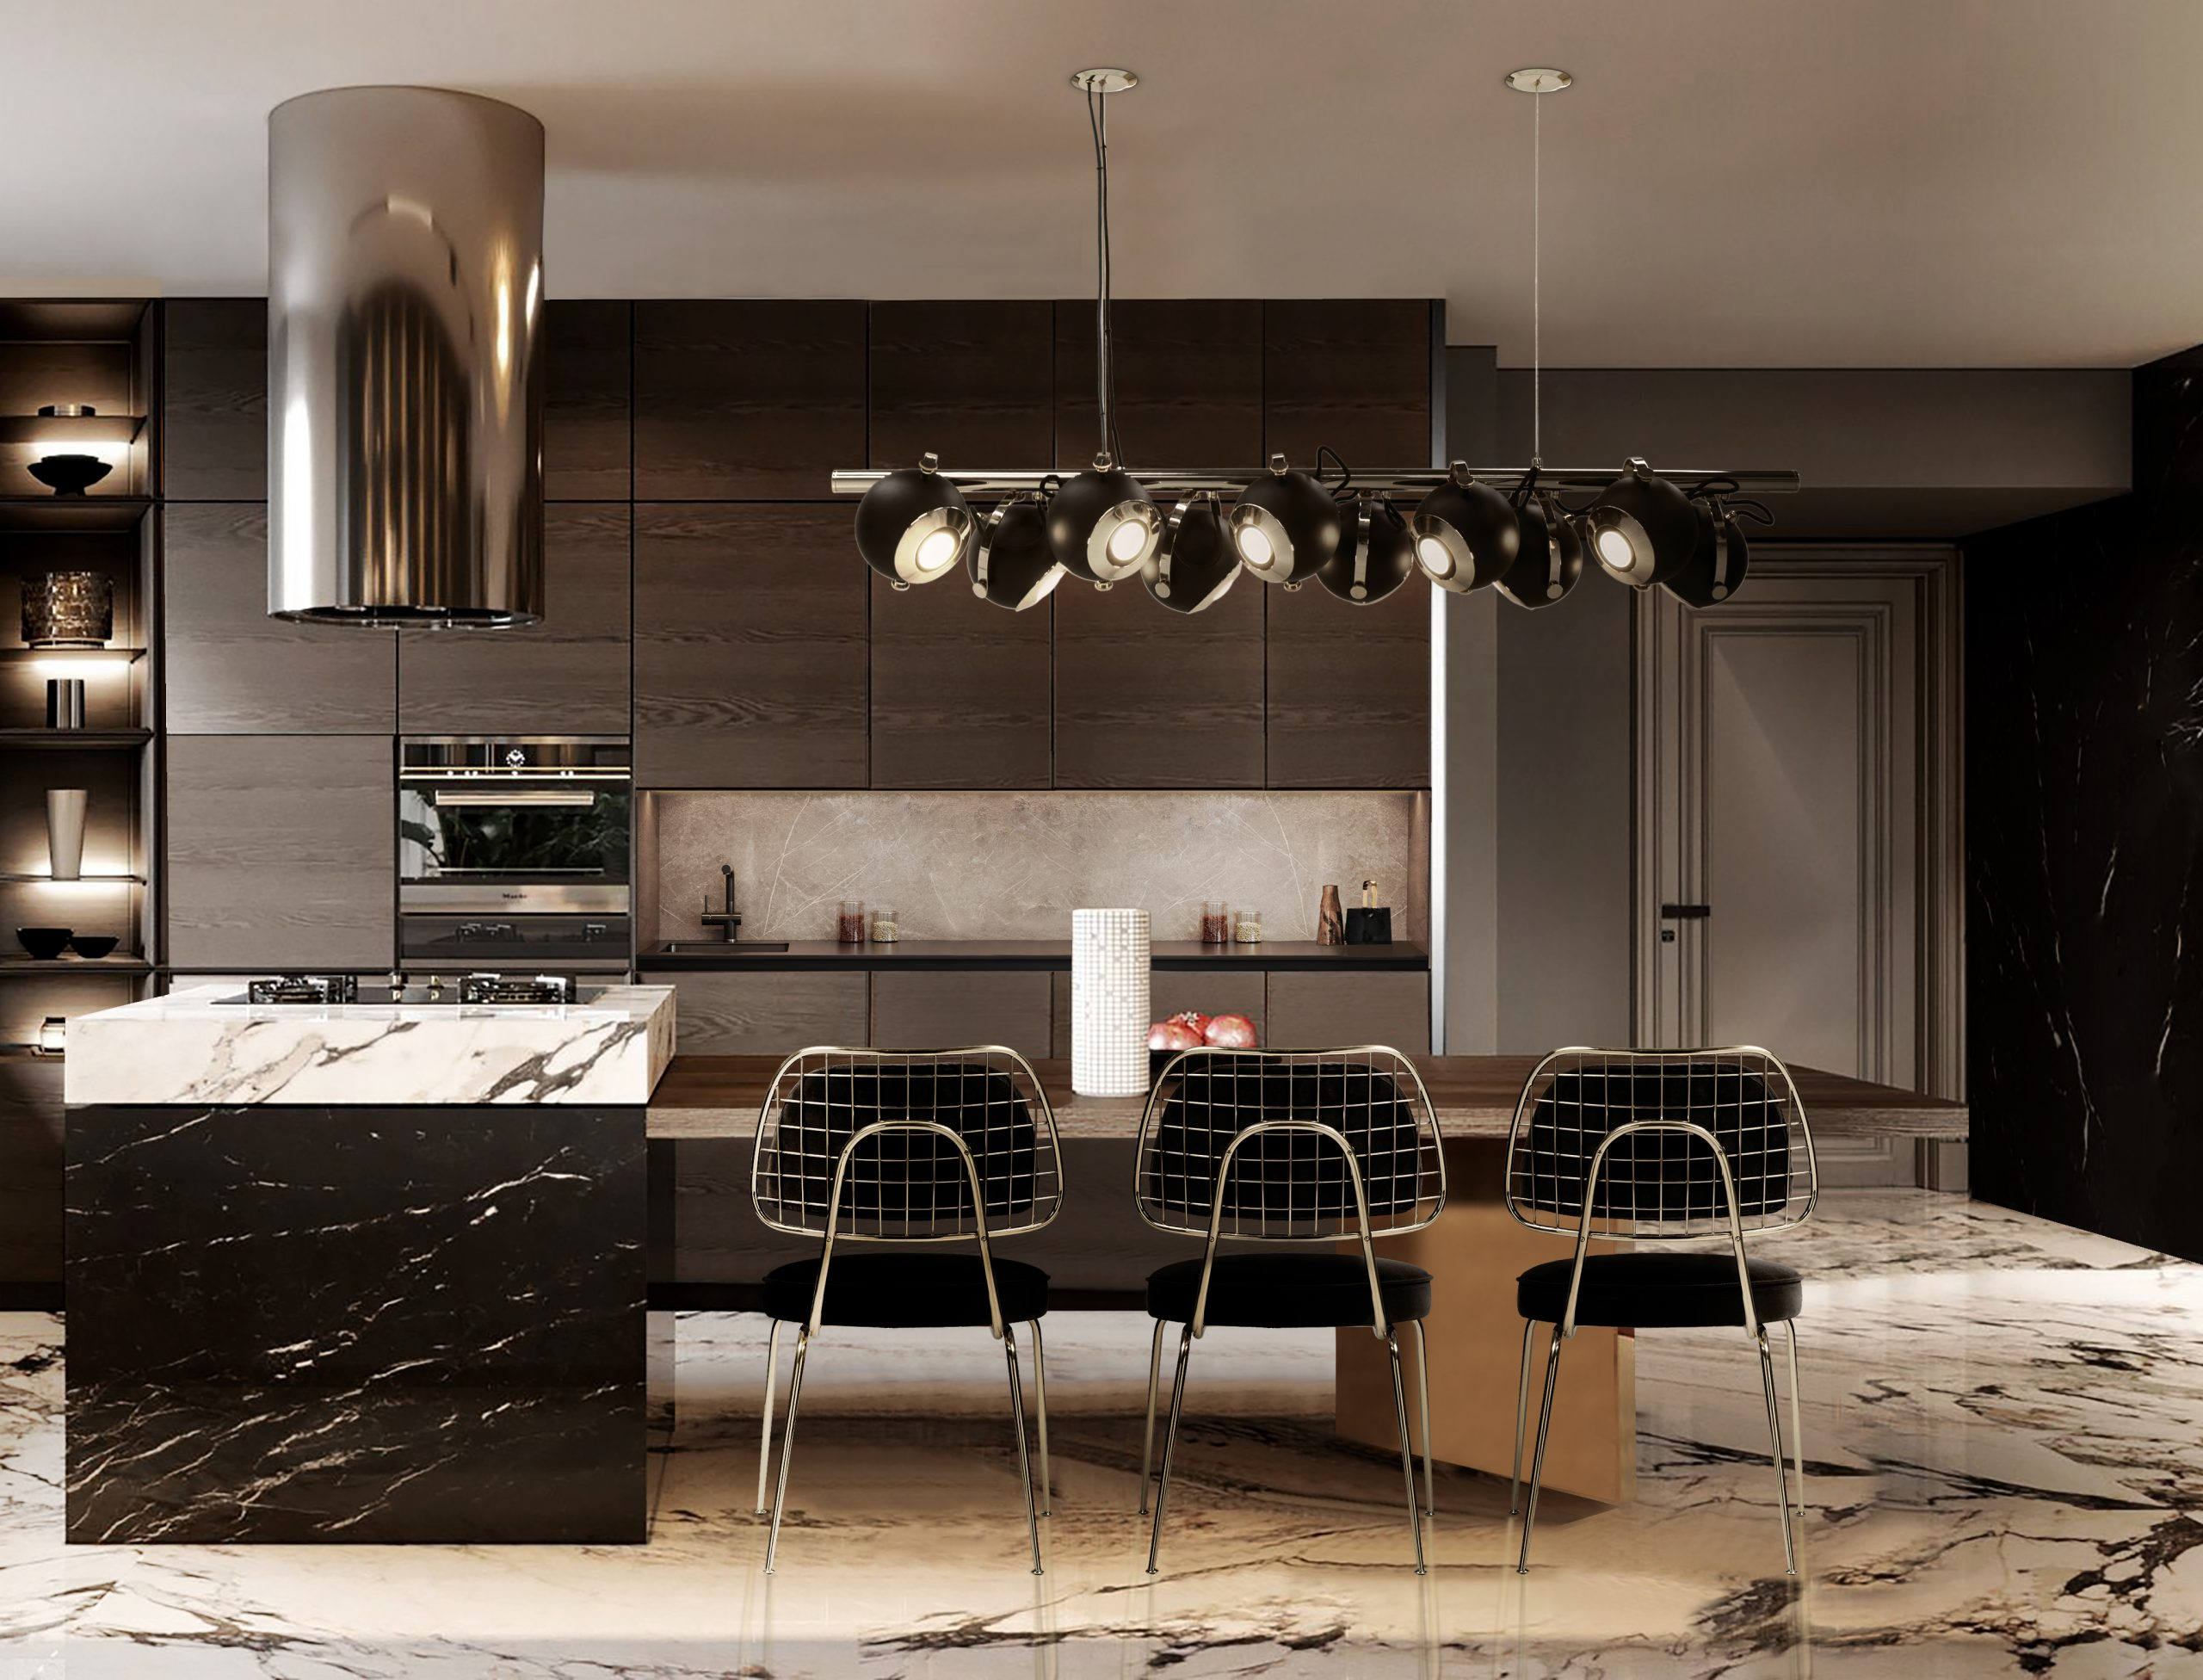 LUXURIOUS BLACK AND WHITE MARBLE KITCHEN DESIGN